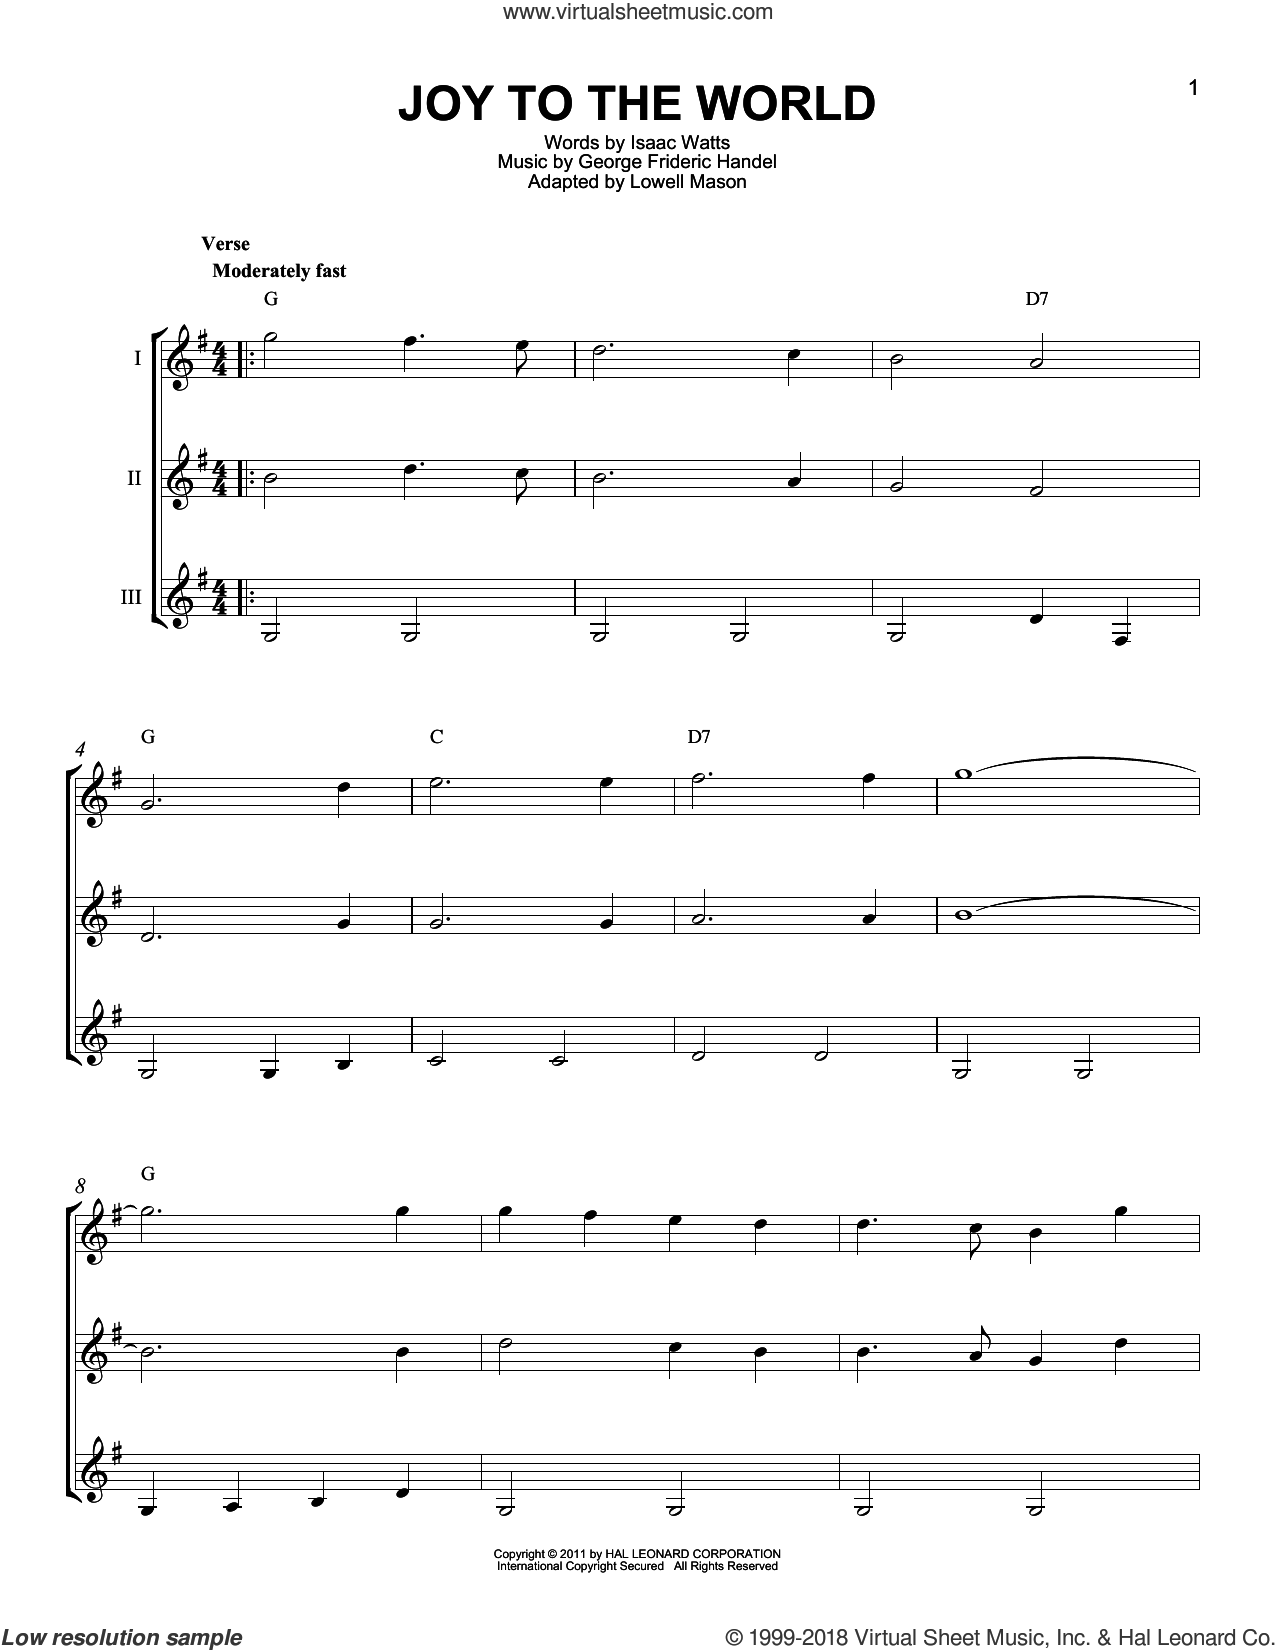 Joy To The World sheet music for guitar ensemble by George Frideric Handel, Isaac Watts and Lowell Mason, intermediate skill level